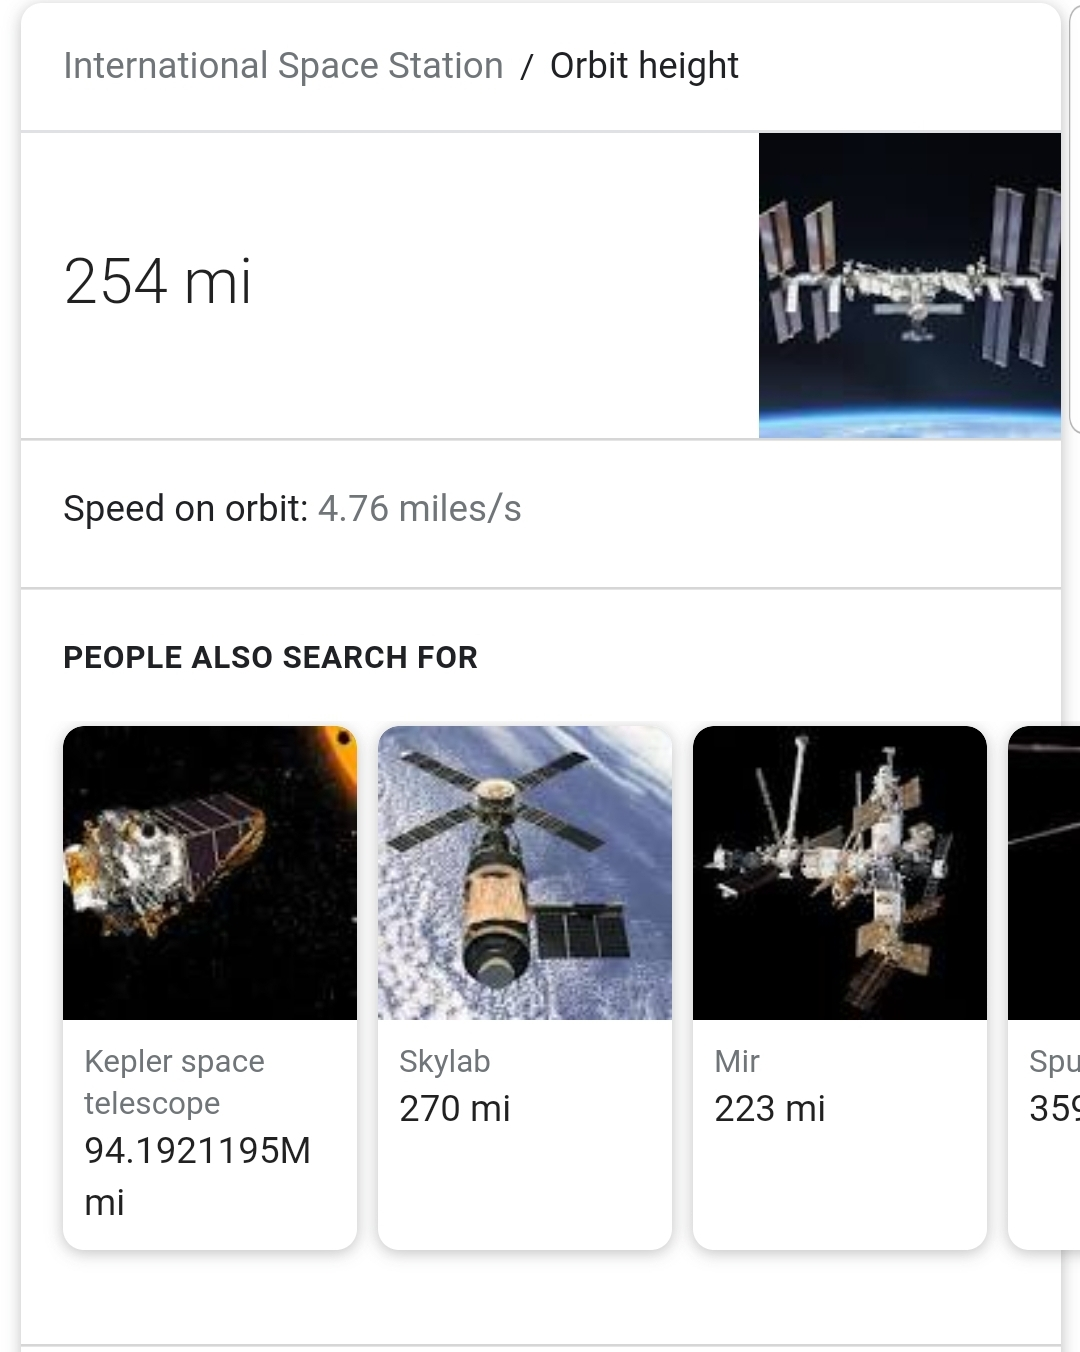 How high does the International Space Station fly above earth?